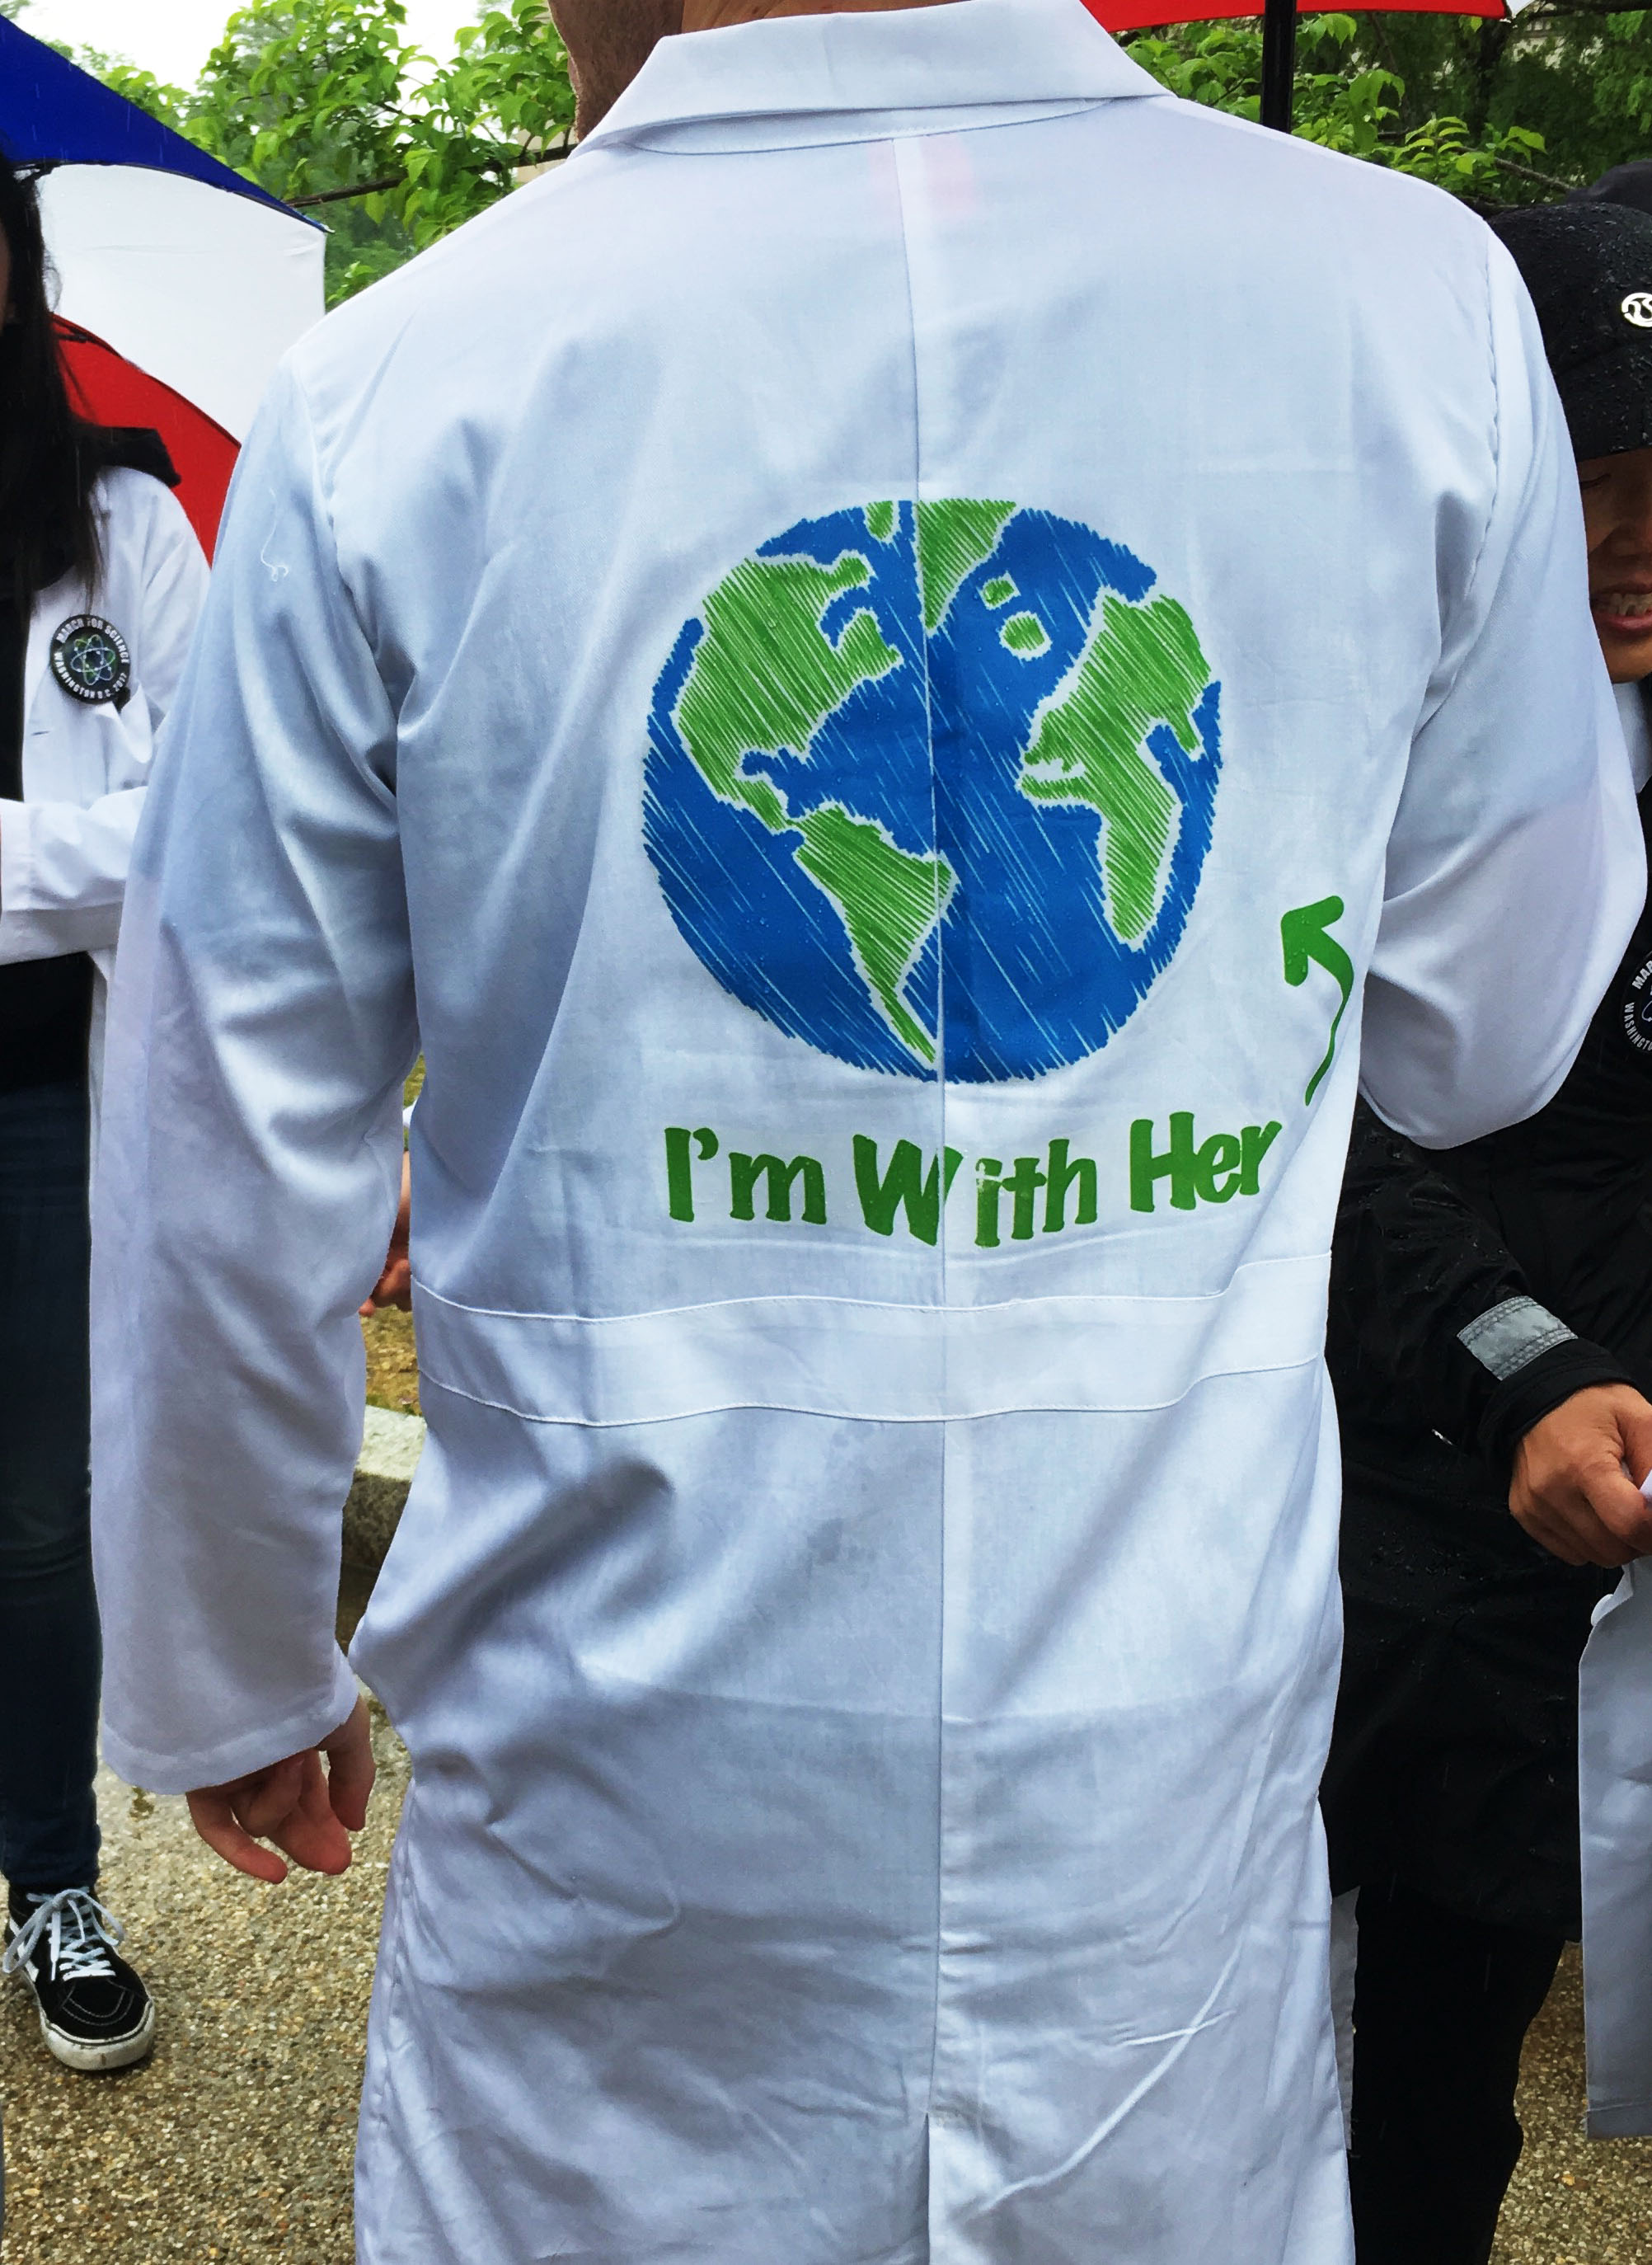 A participant in the March for Science shows off his costume.